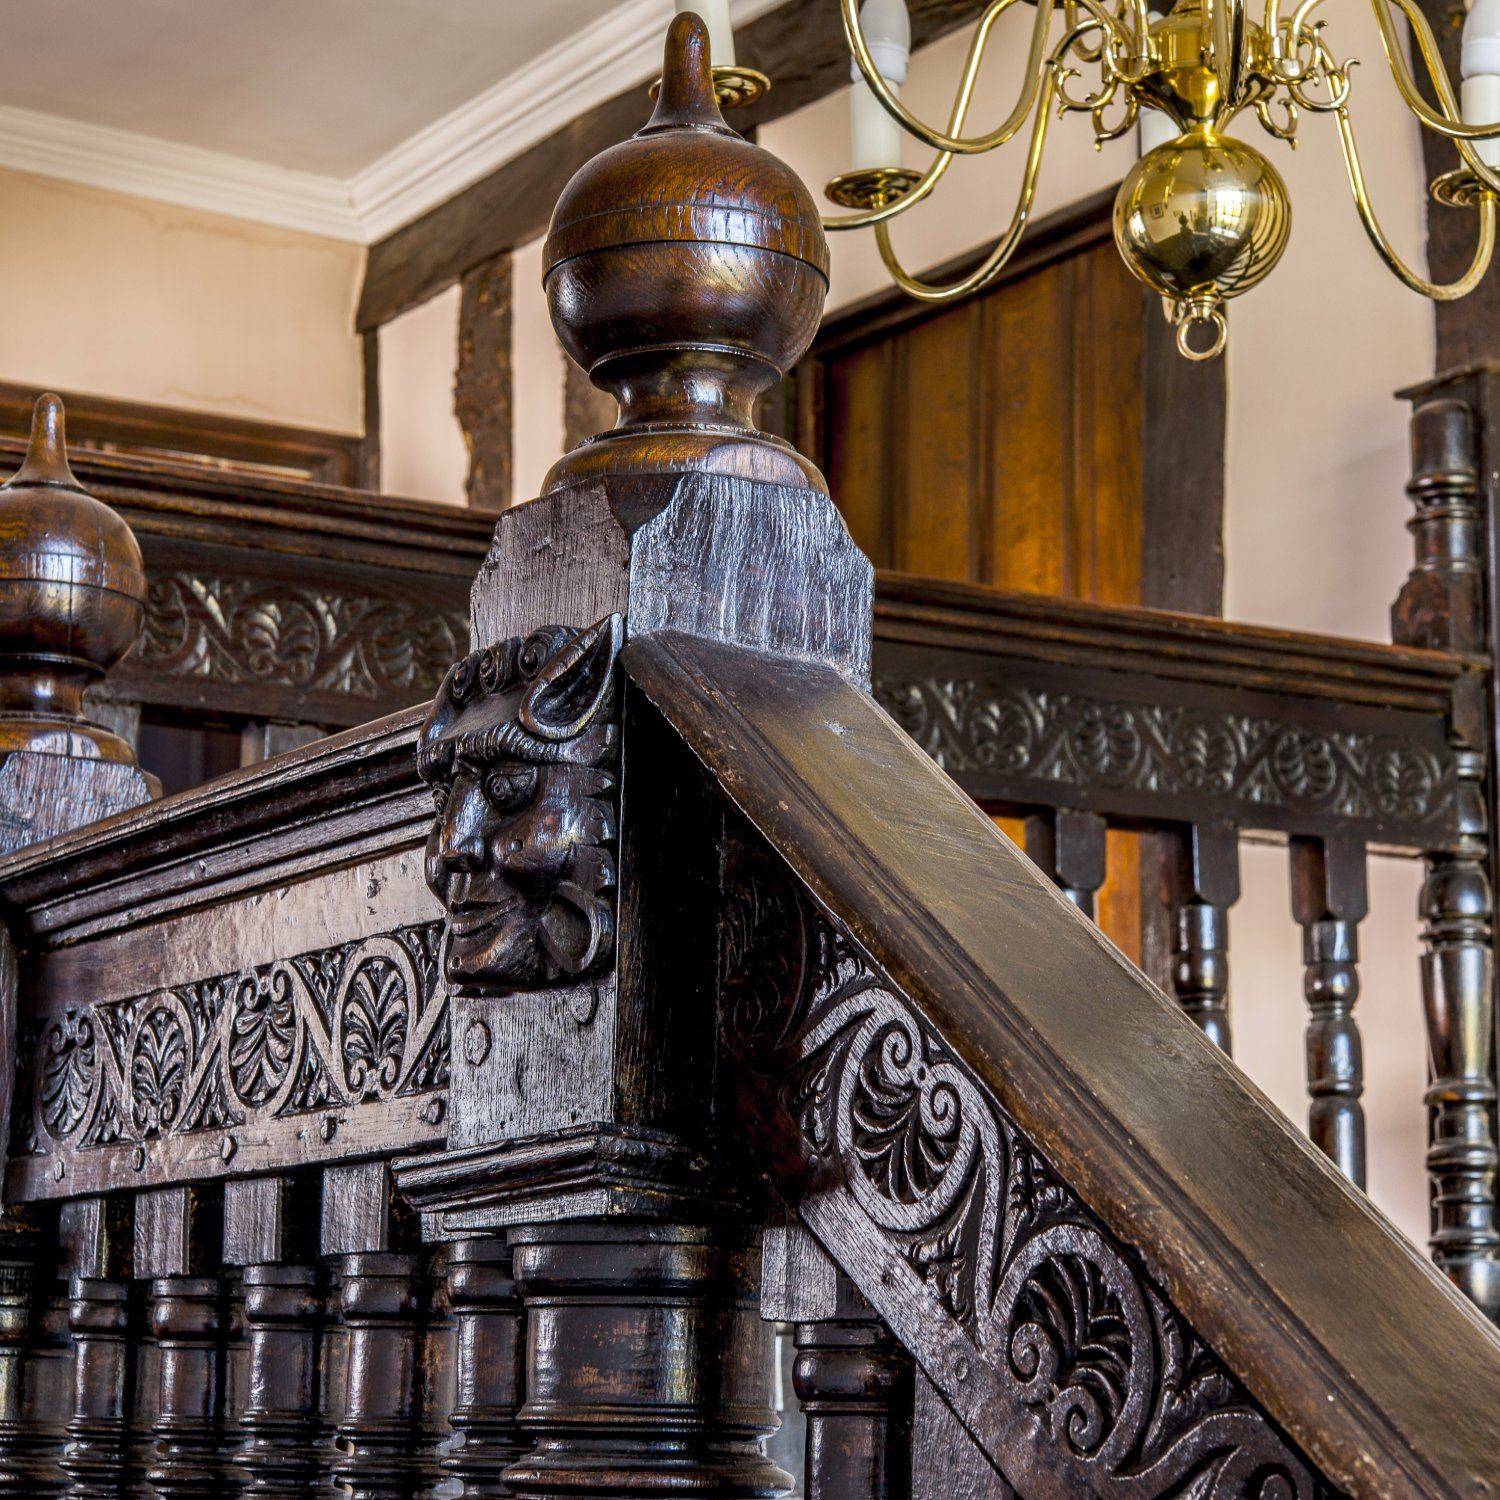 Restoration of the original late C16th staircase